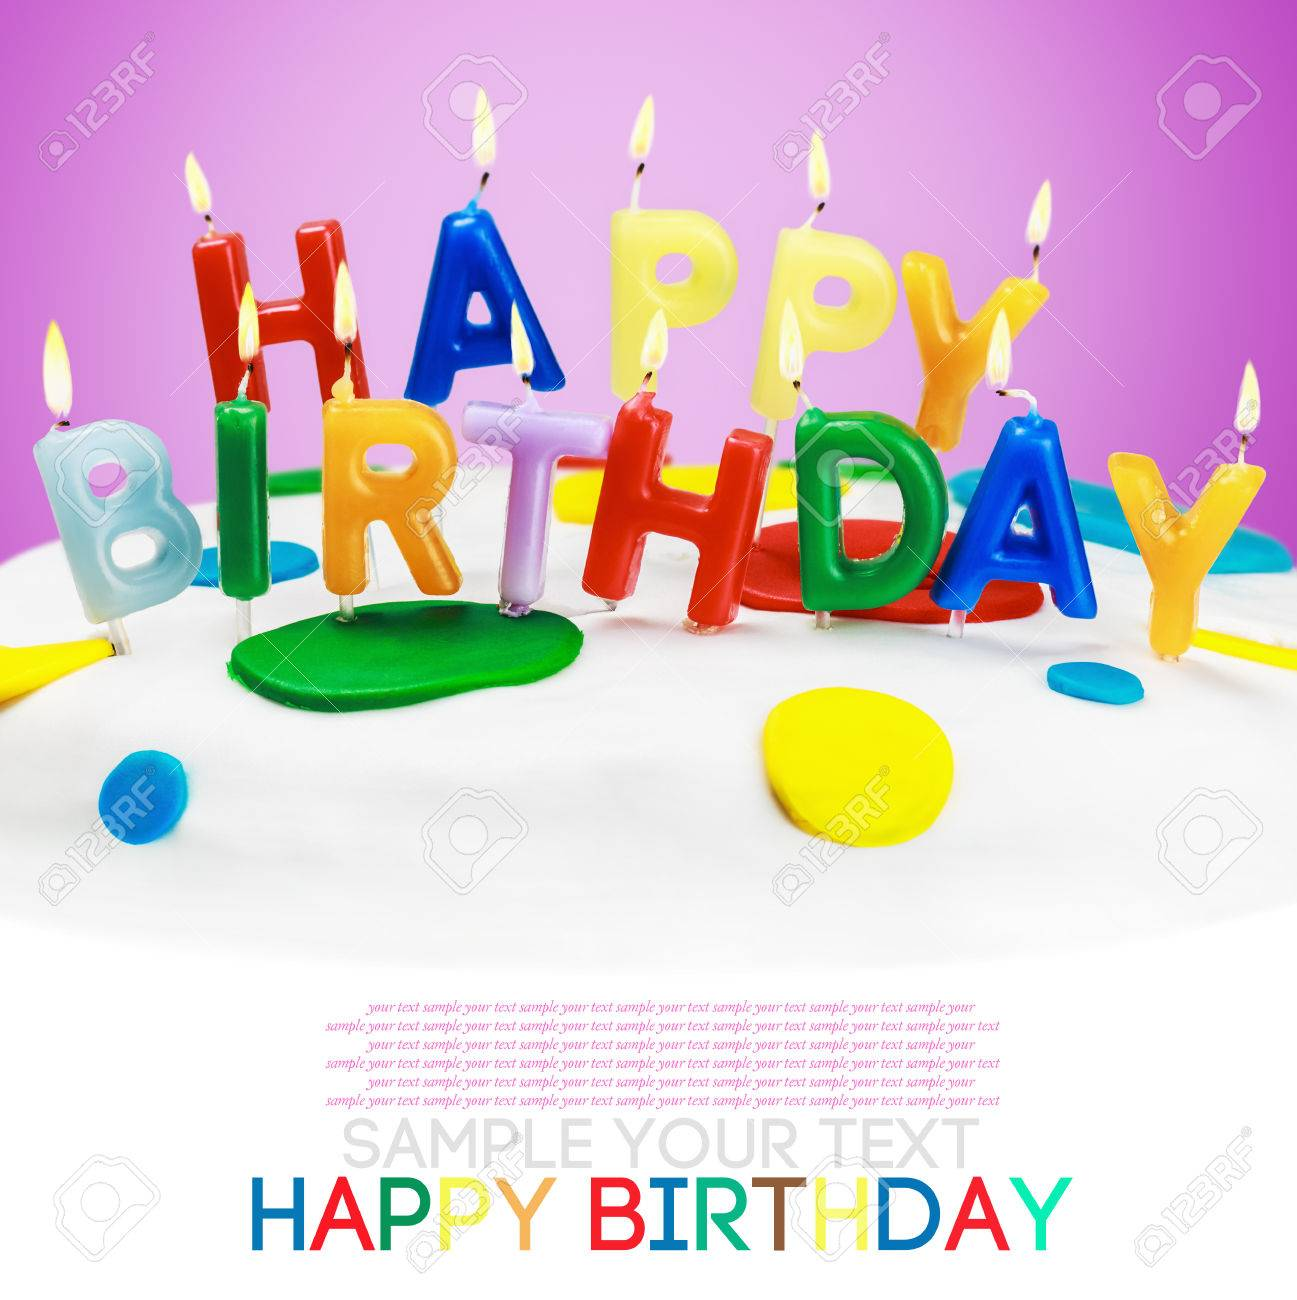 Lighted Candles On A Birthday Cake Bottom White Space For Text Or Congratulations